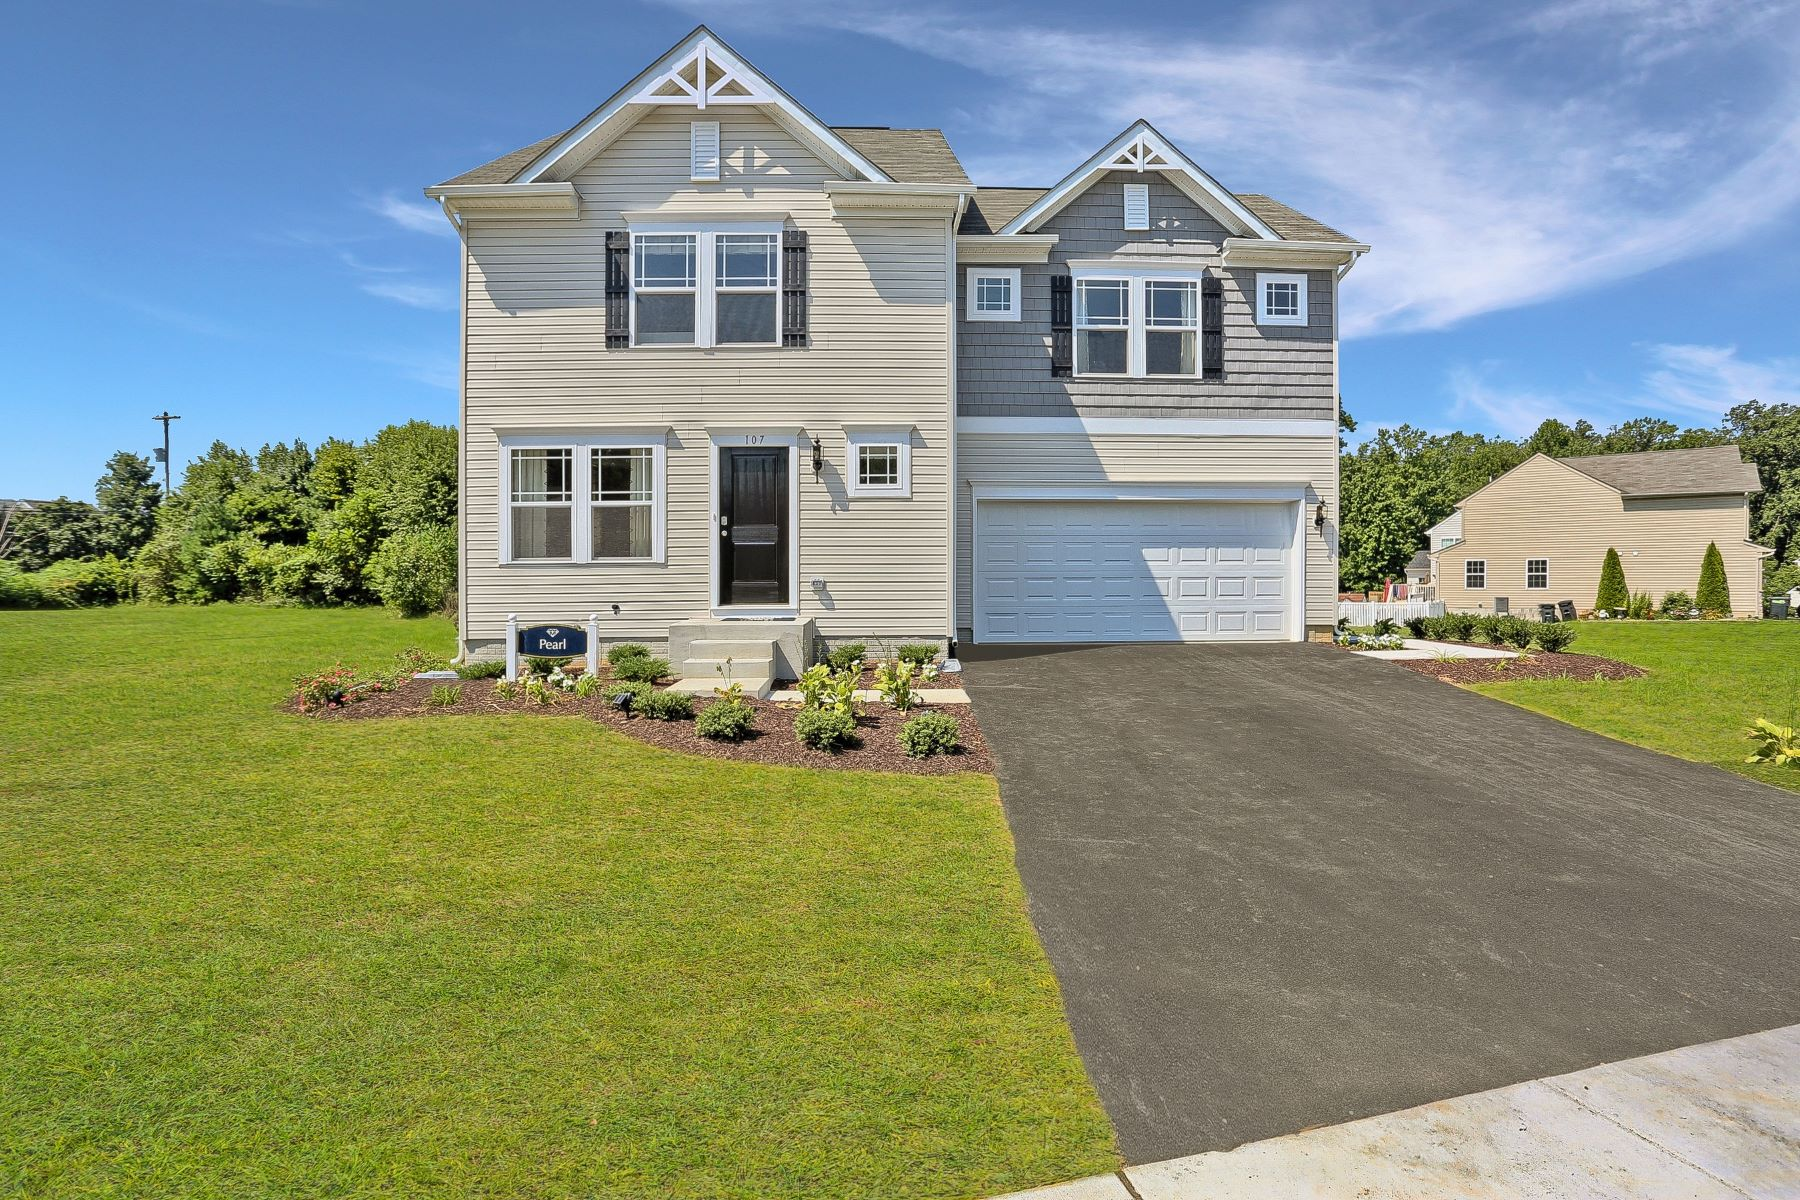 Single Family Homes のために 売買 アット The Pearl at Captain's Cove Lot 802 Fathom Road, Greenbackville, バージニア 23356 アメリカ